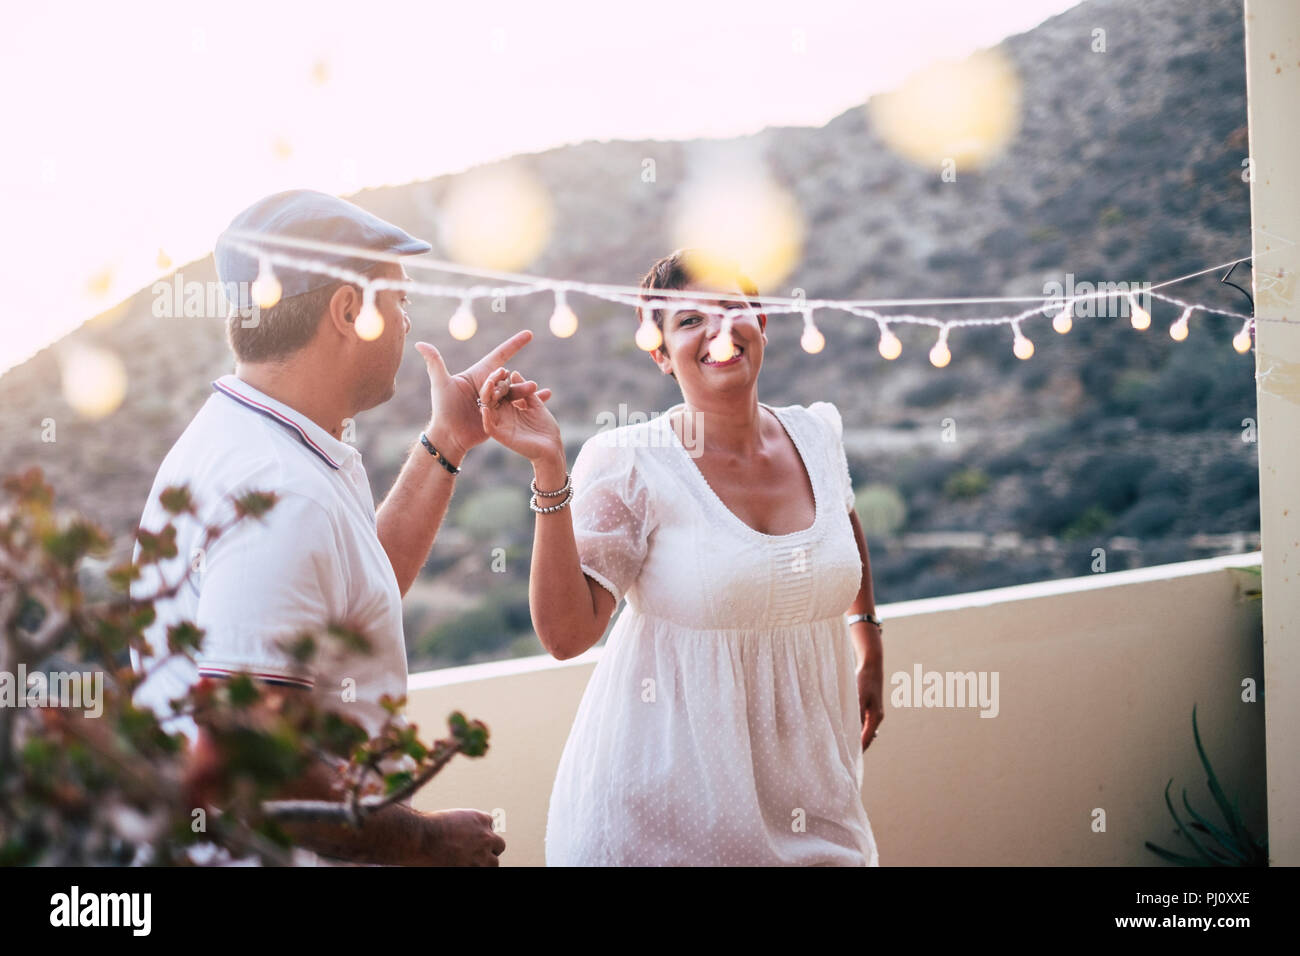 happy caucasian people dancing together at home in terrace with lights during the sunset. romantic and relationship concept image for happy people in  - Stock Image